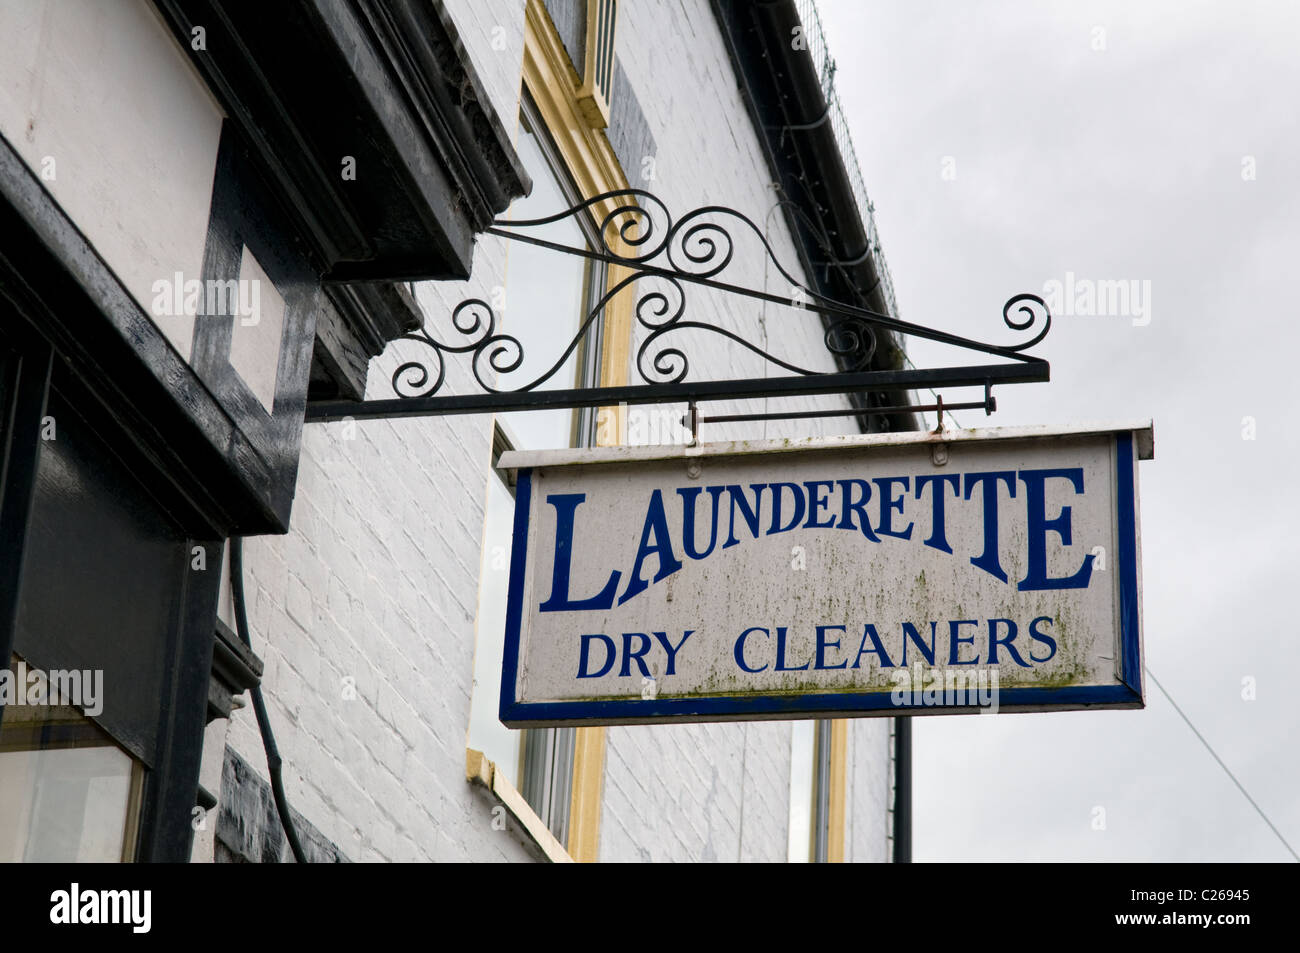 Old fashioned launderette sign taken in Upton upon Severn, Worcestershire, England, UK - Stock Image